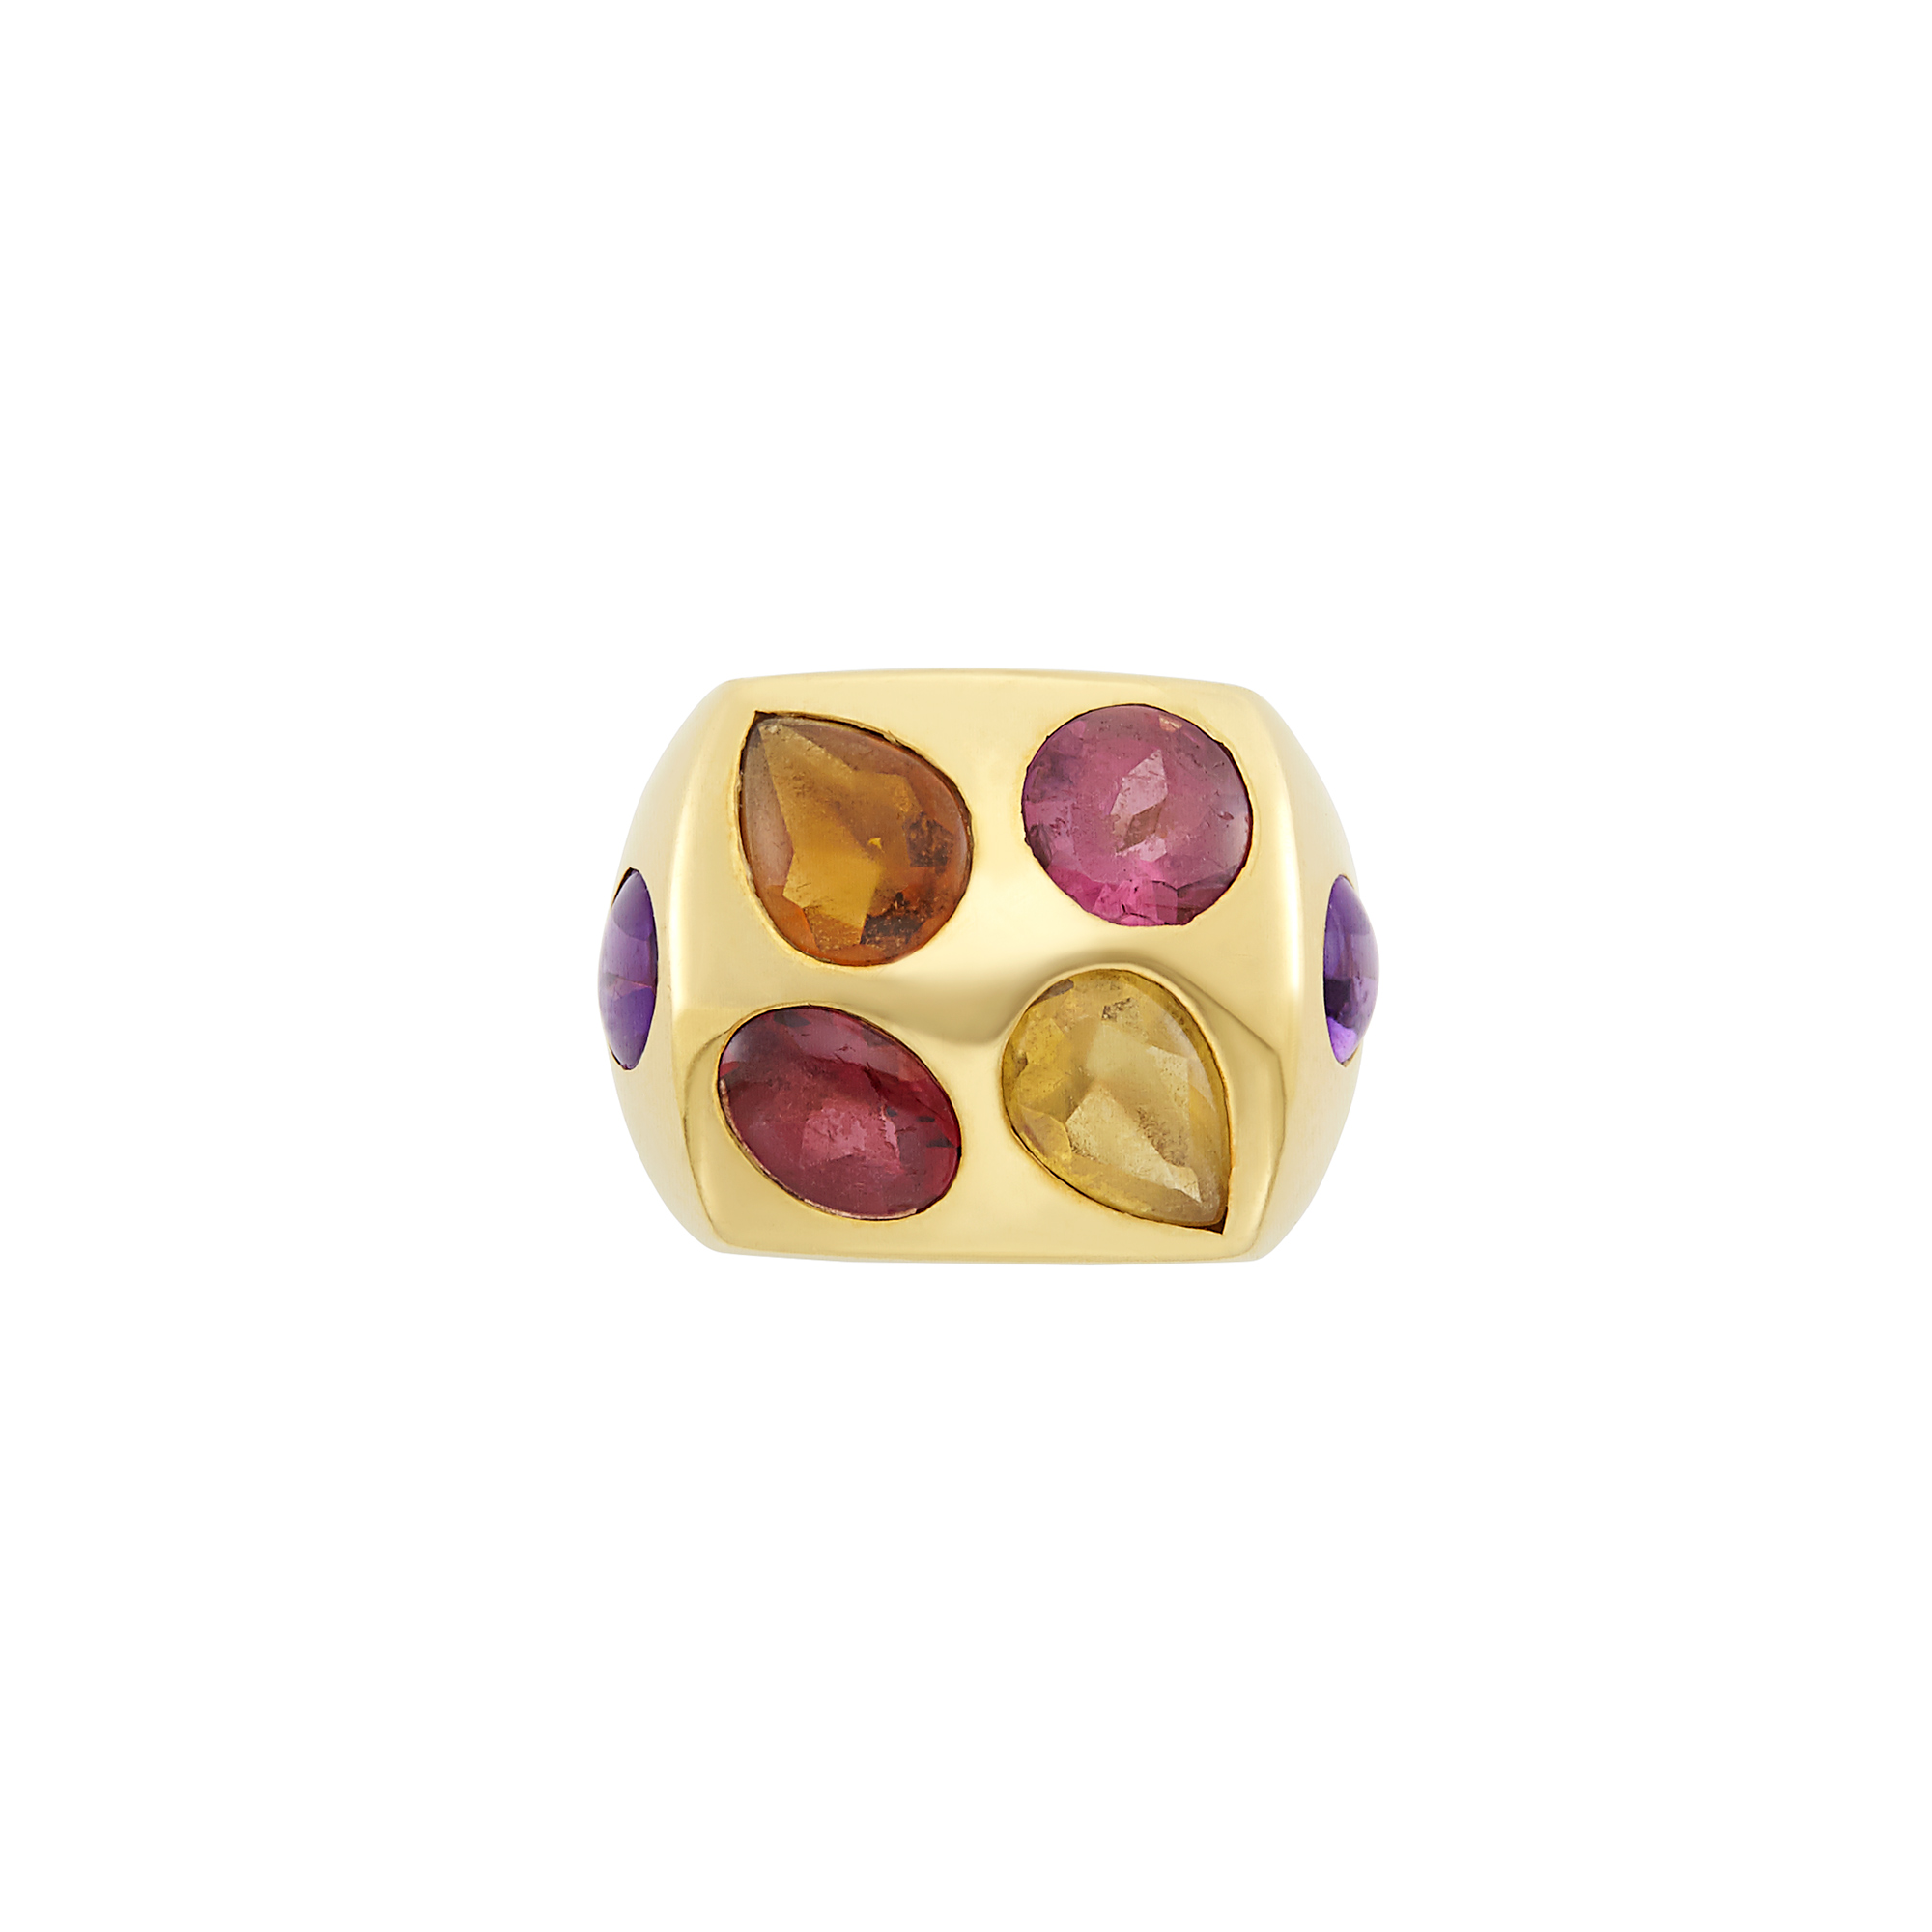 Lot image - Gold and Cabochon Colored Stone Ring, Chanel, France